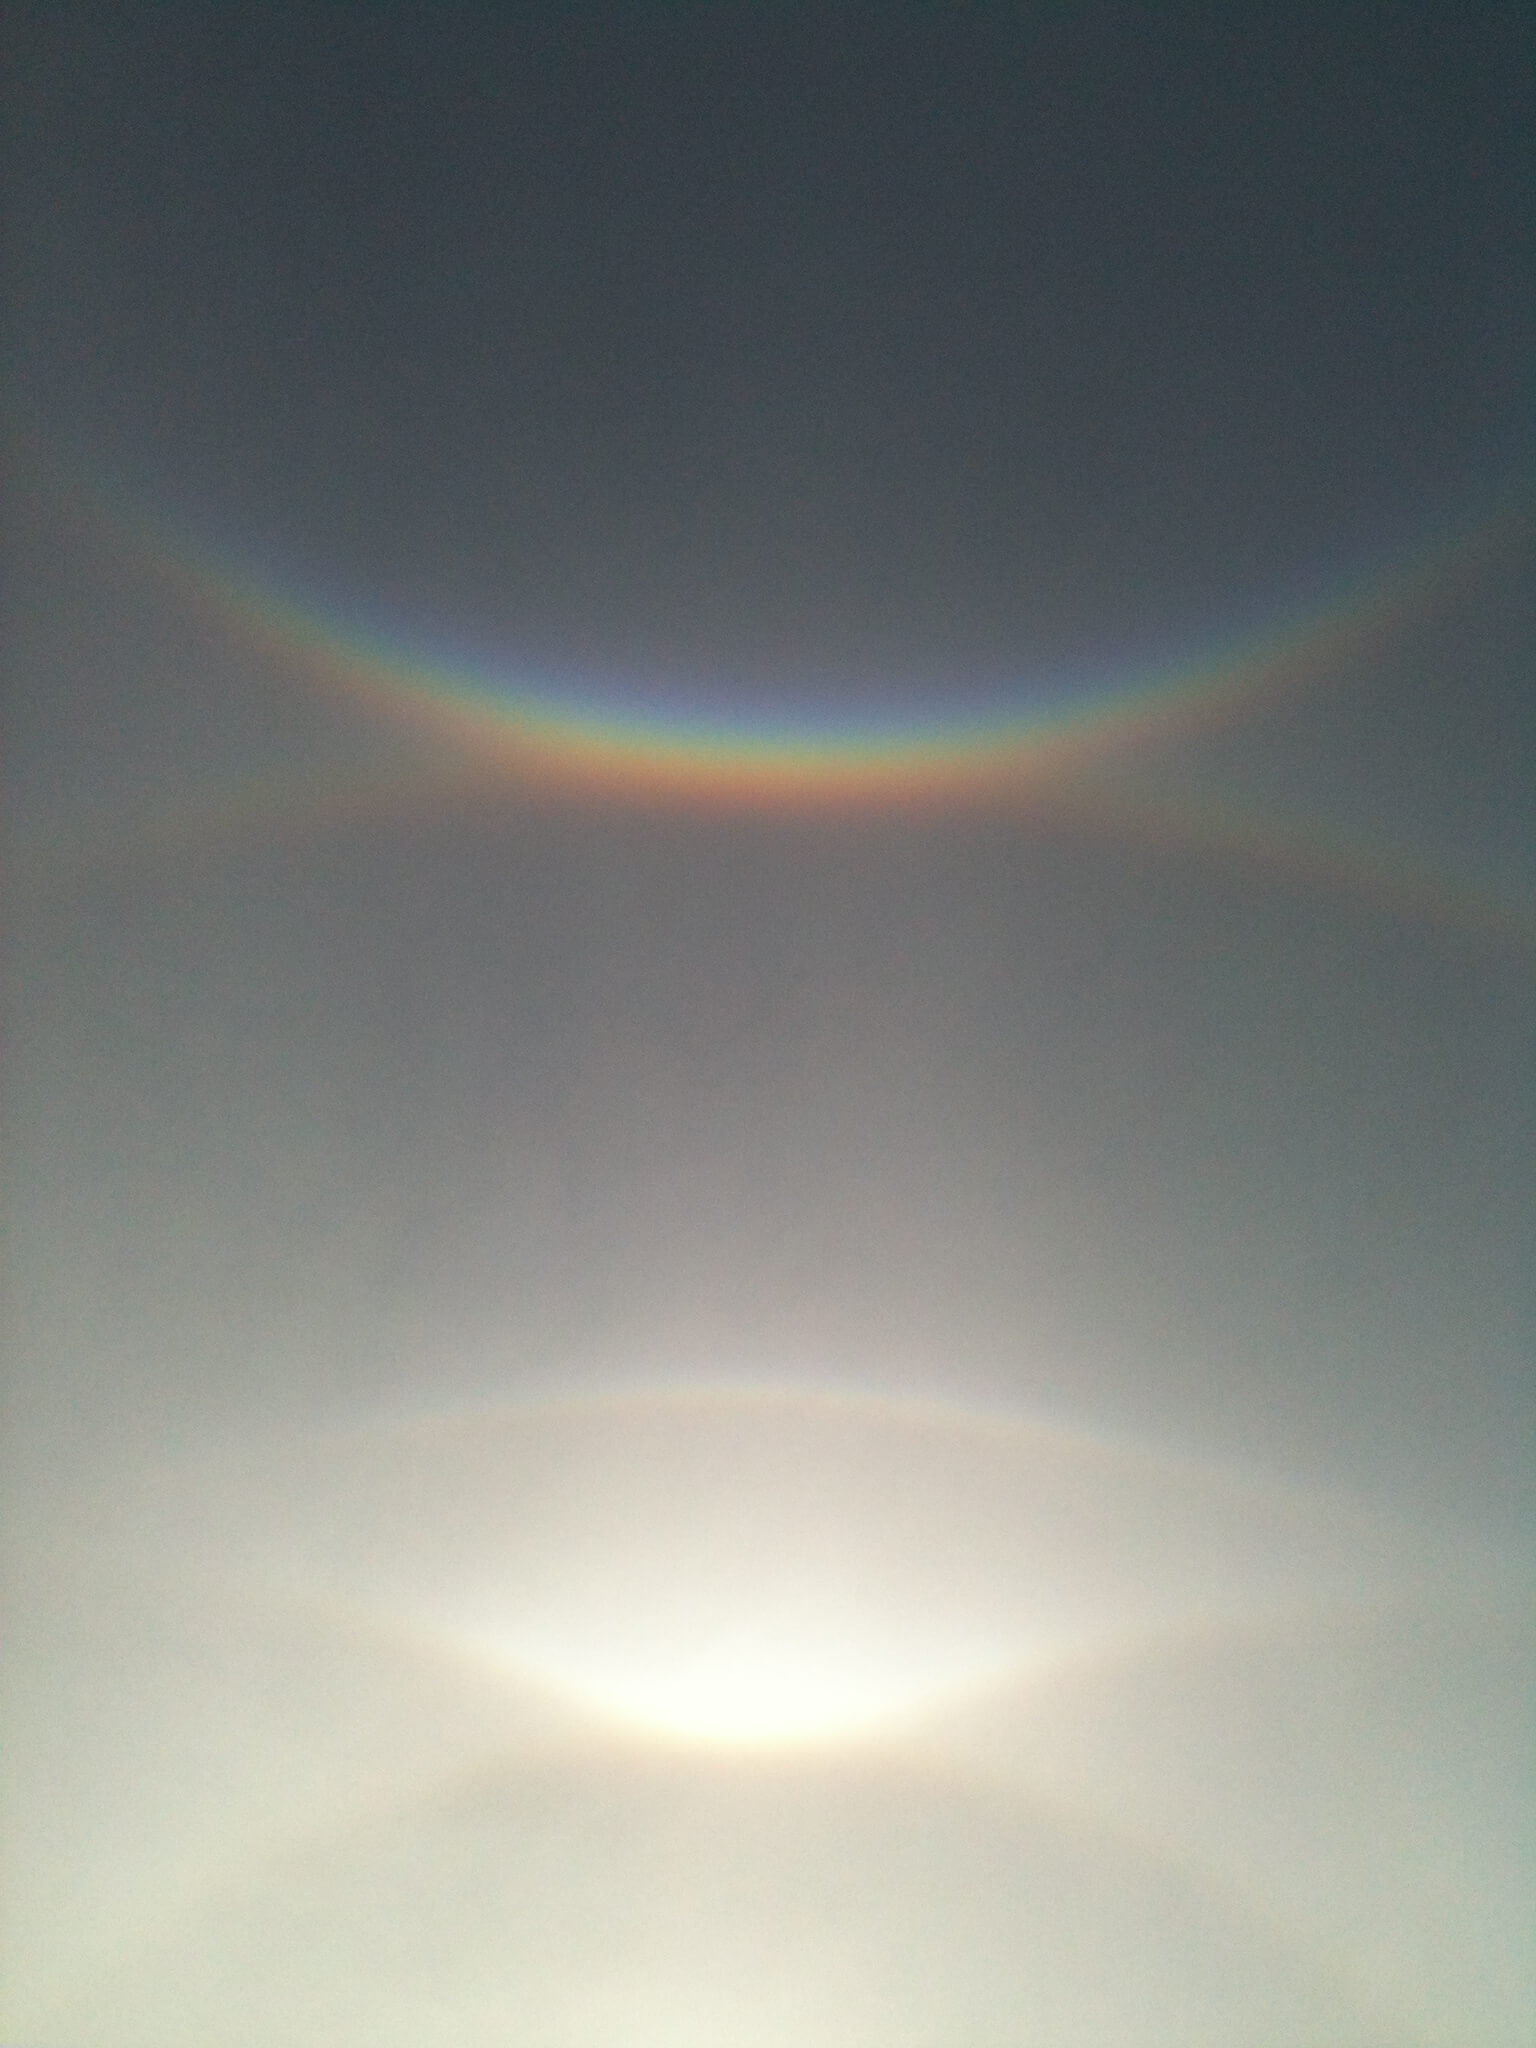 Otherworldly Incantations Atmospheric Worldbuilding Circumzenithal Arc